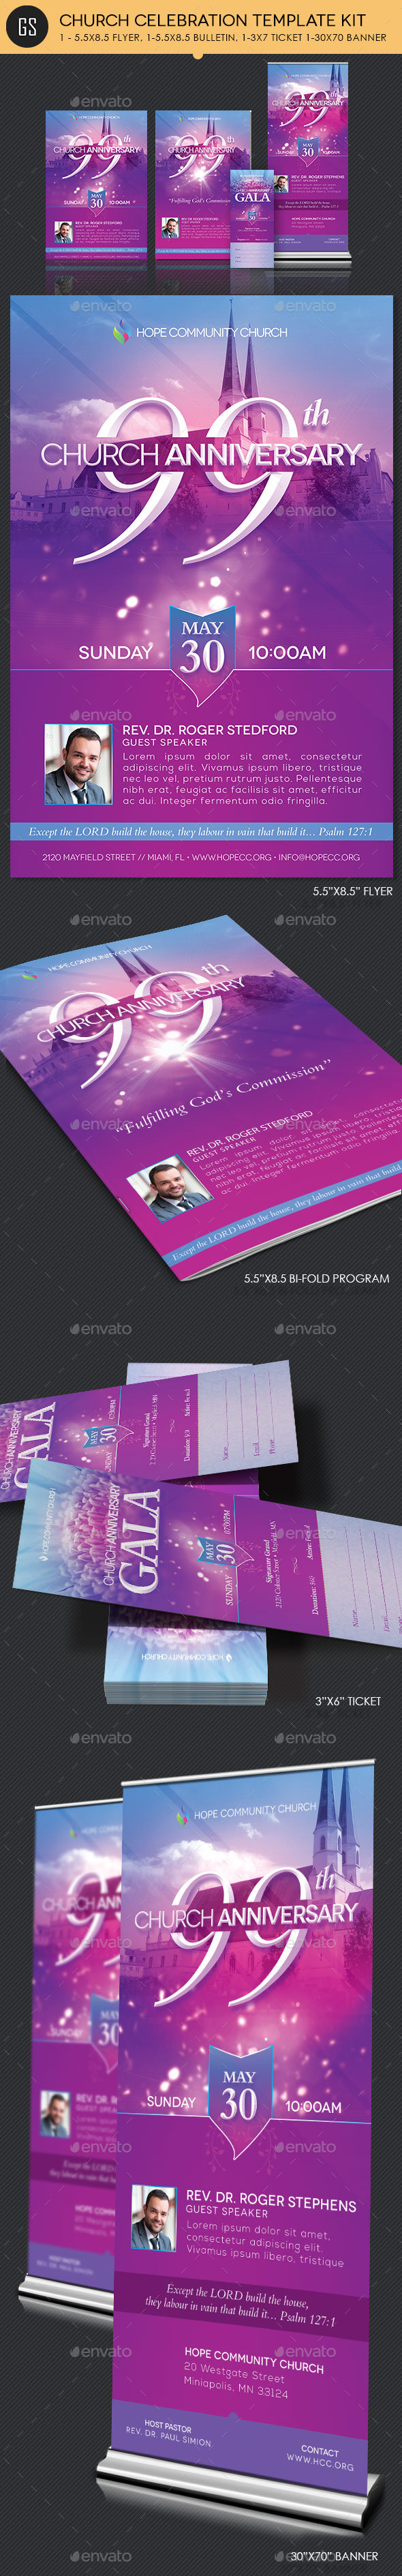 Church Celebration Template Kit - Church Flyers